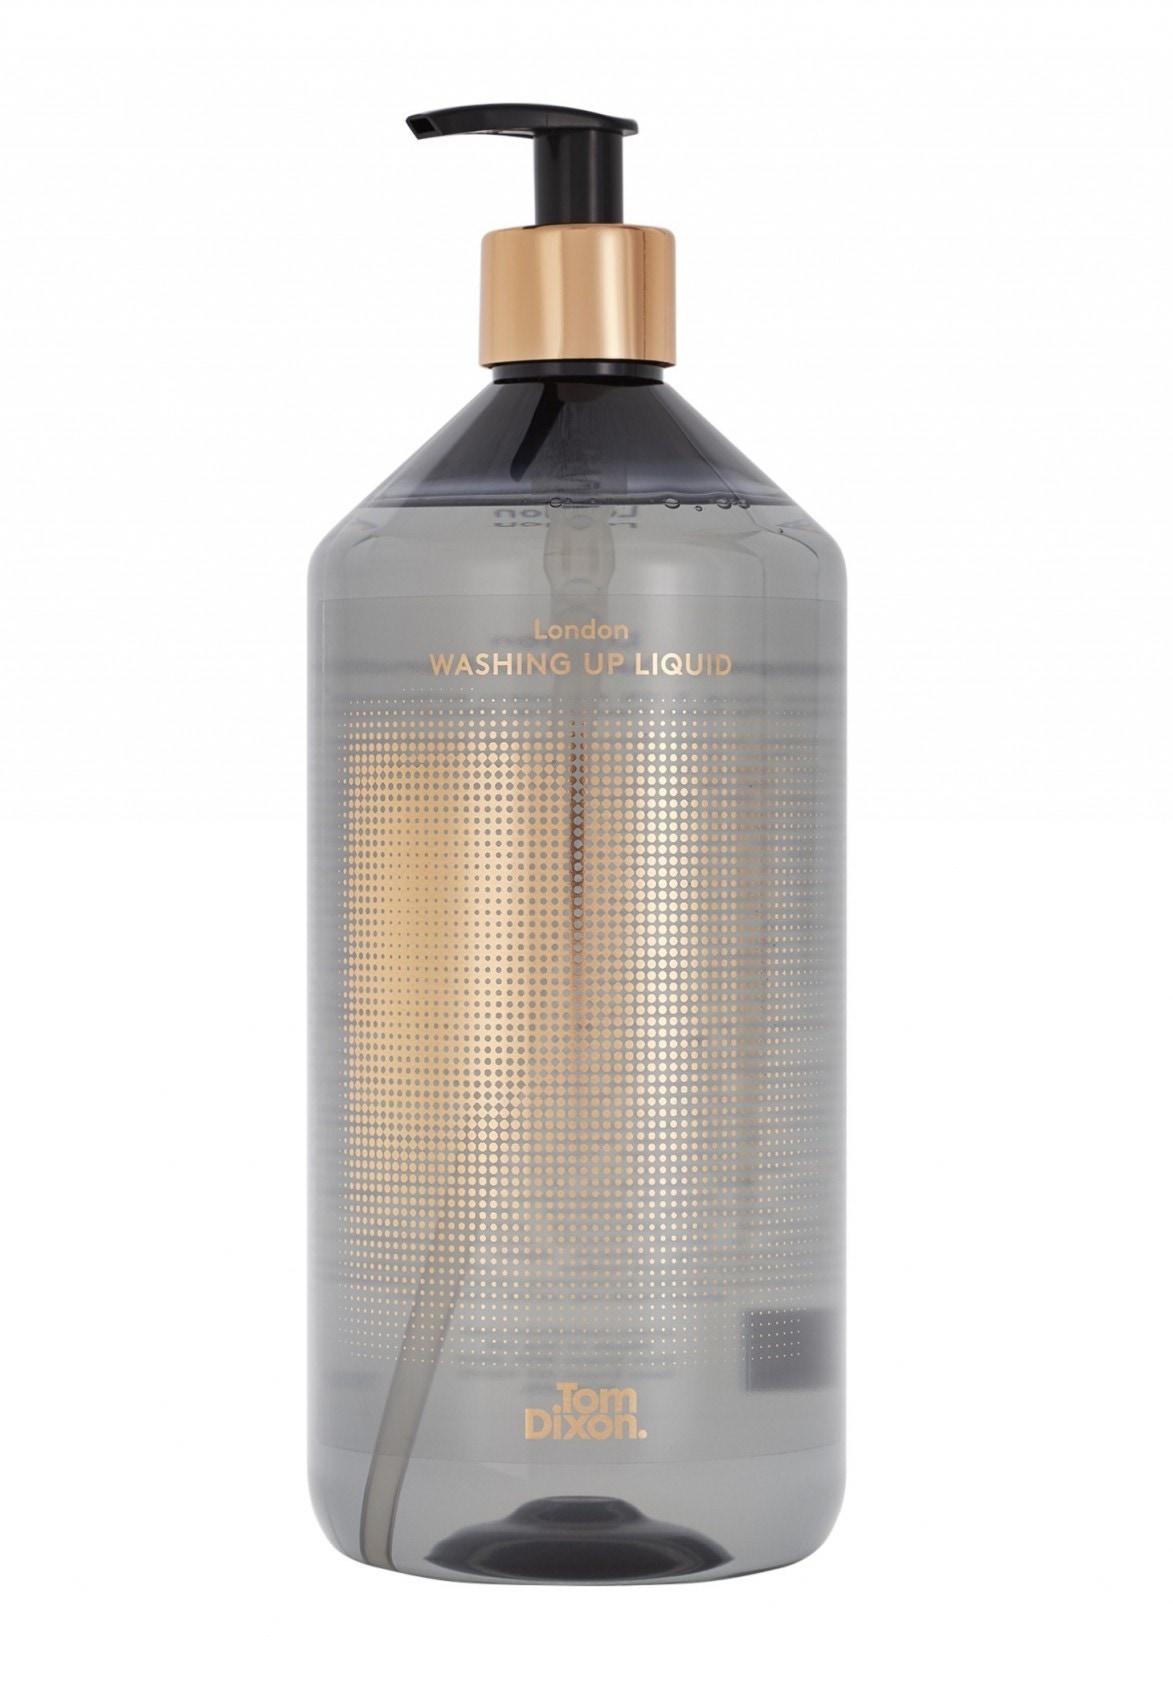 Tom Dixon Eclectic London Washing Up Liquid